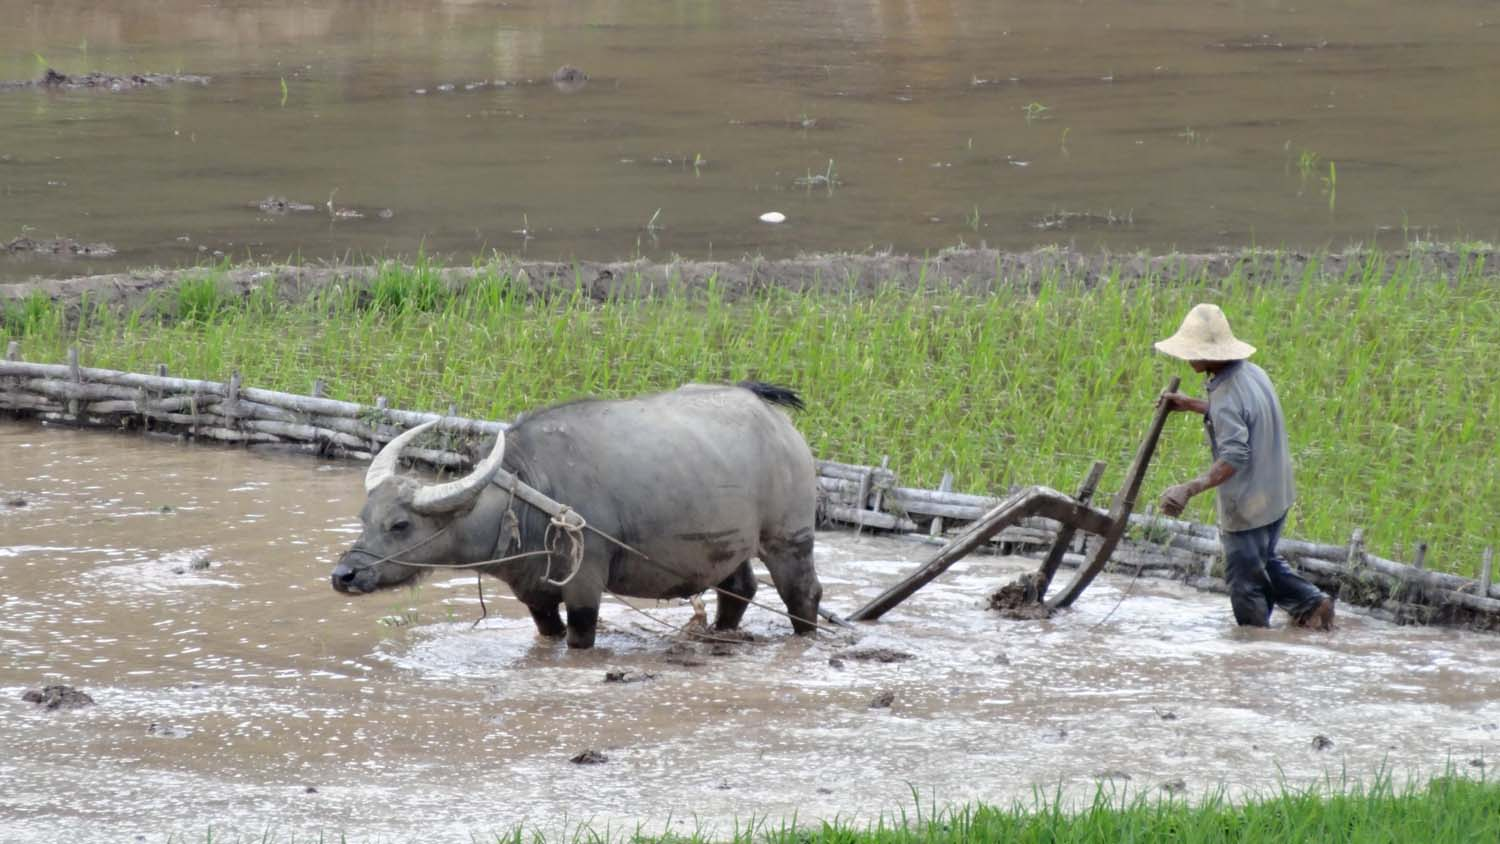 water buffaloes are still used for ploughing the rice paddies